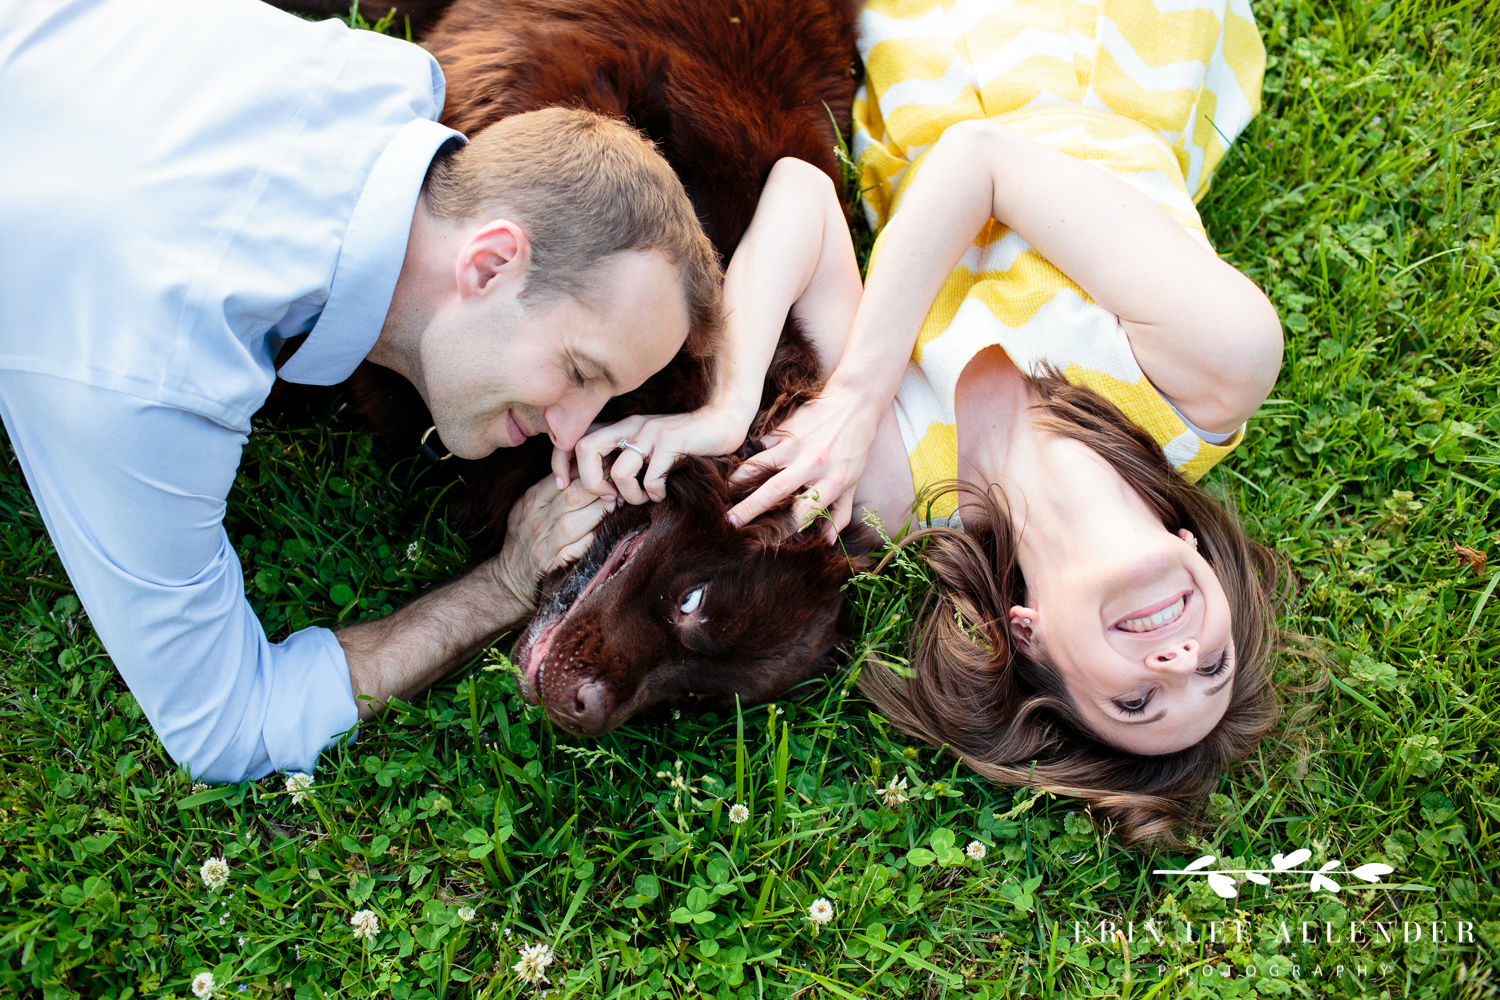 Couple_With_Dog_In_Grass